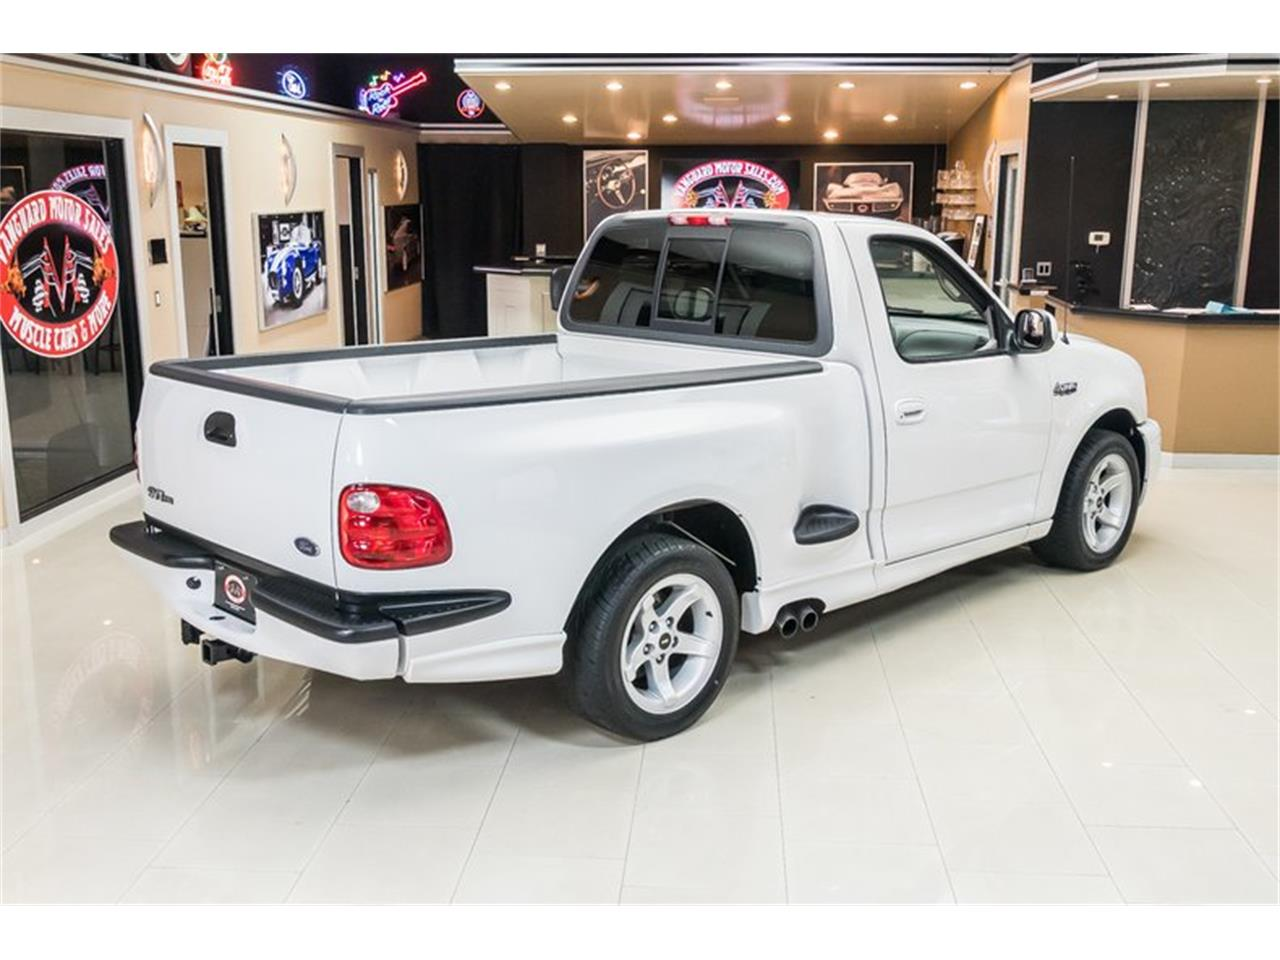 Large Picture of 2000 F150 located in Michigan - $39,900.00 Offered by Vanguard Motor Sales - PWH0